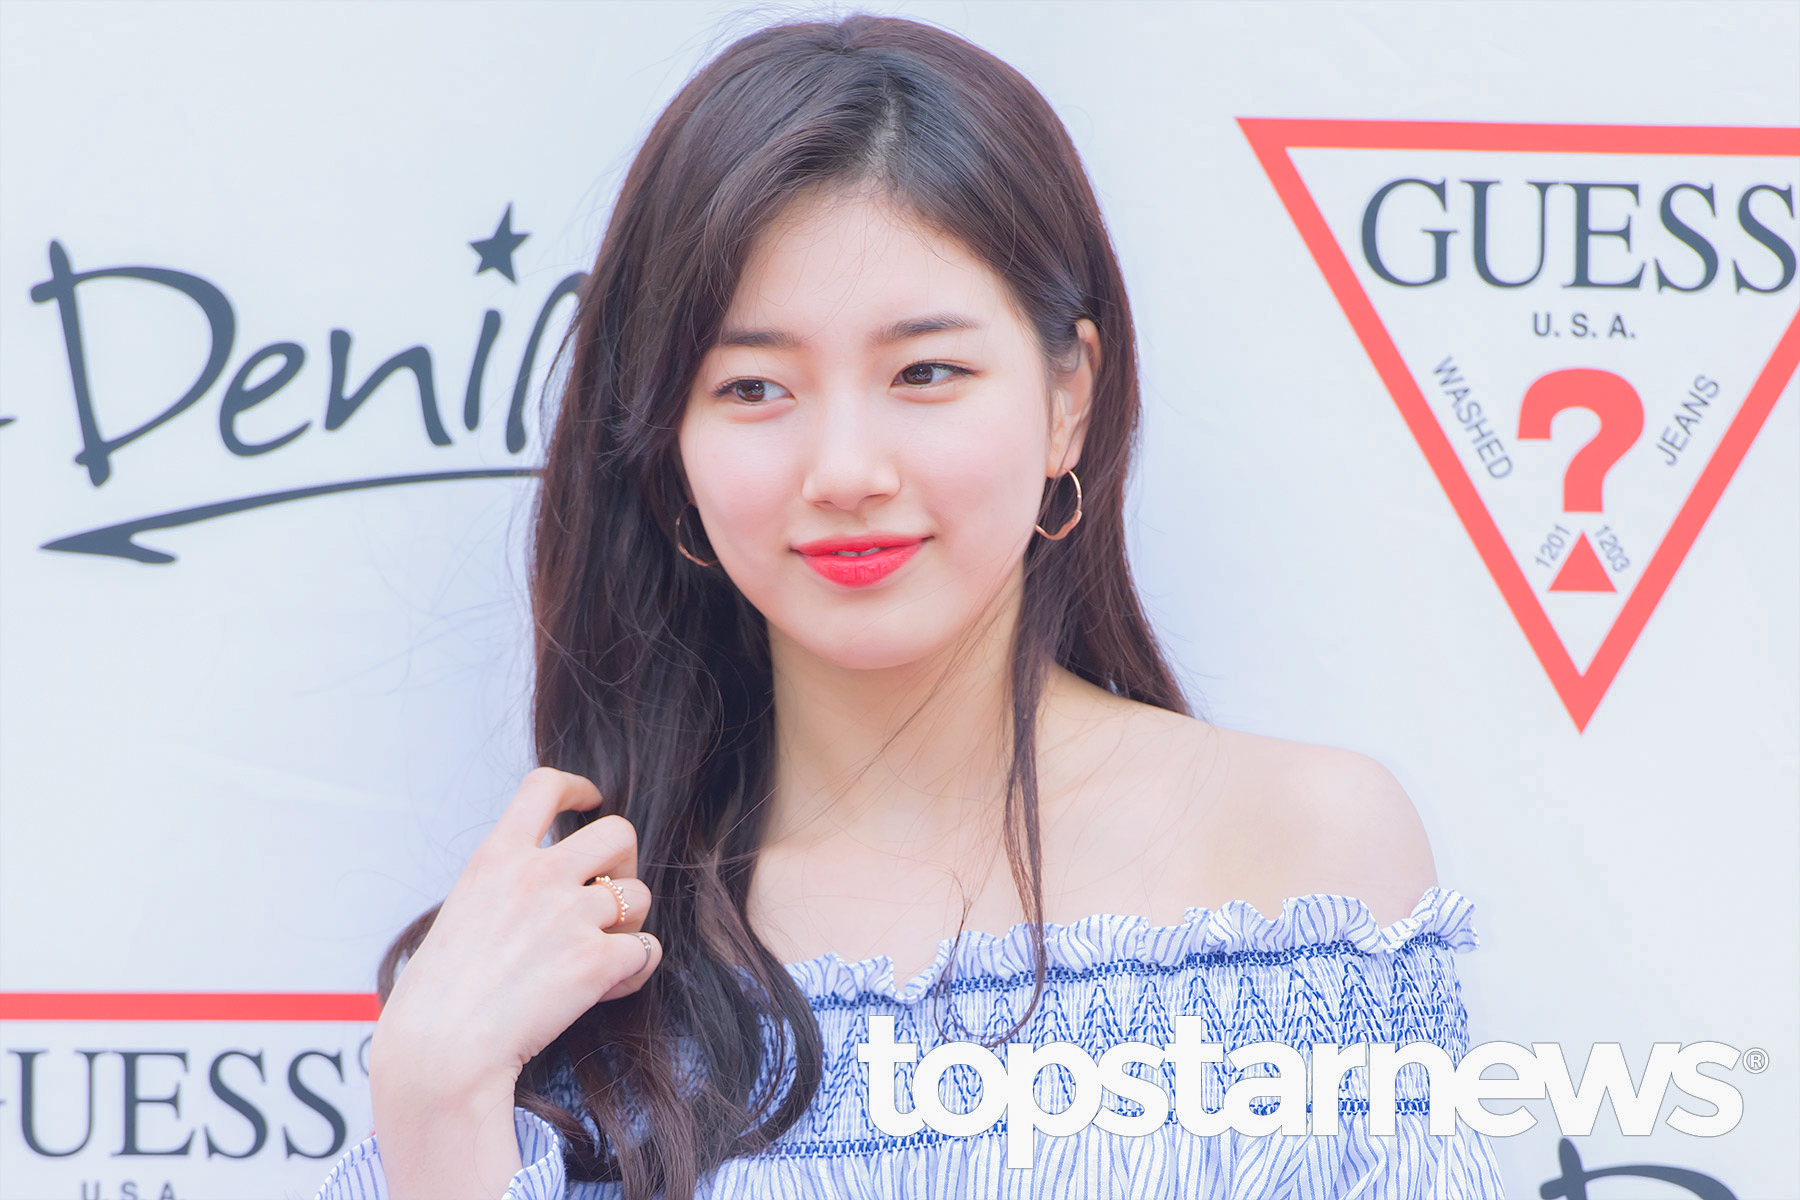 korea korean kpop idol girl group band miss a suzy's spring outfit for guess sign event off the shoulder girly date fashion style girls women kpopstuff main